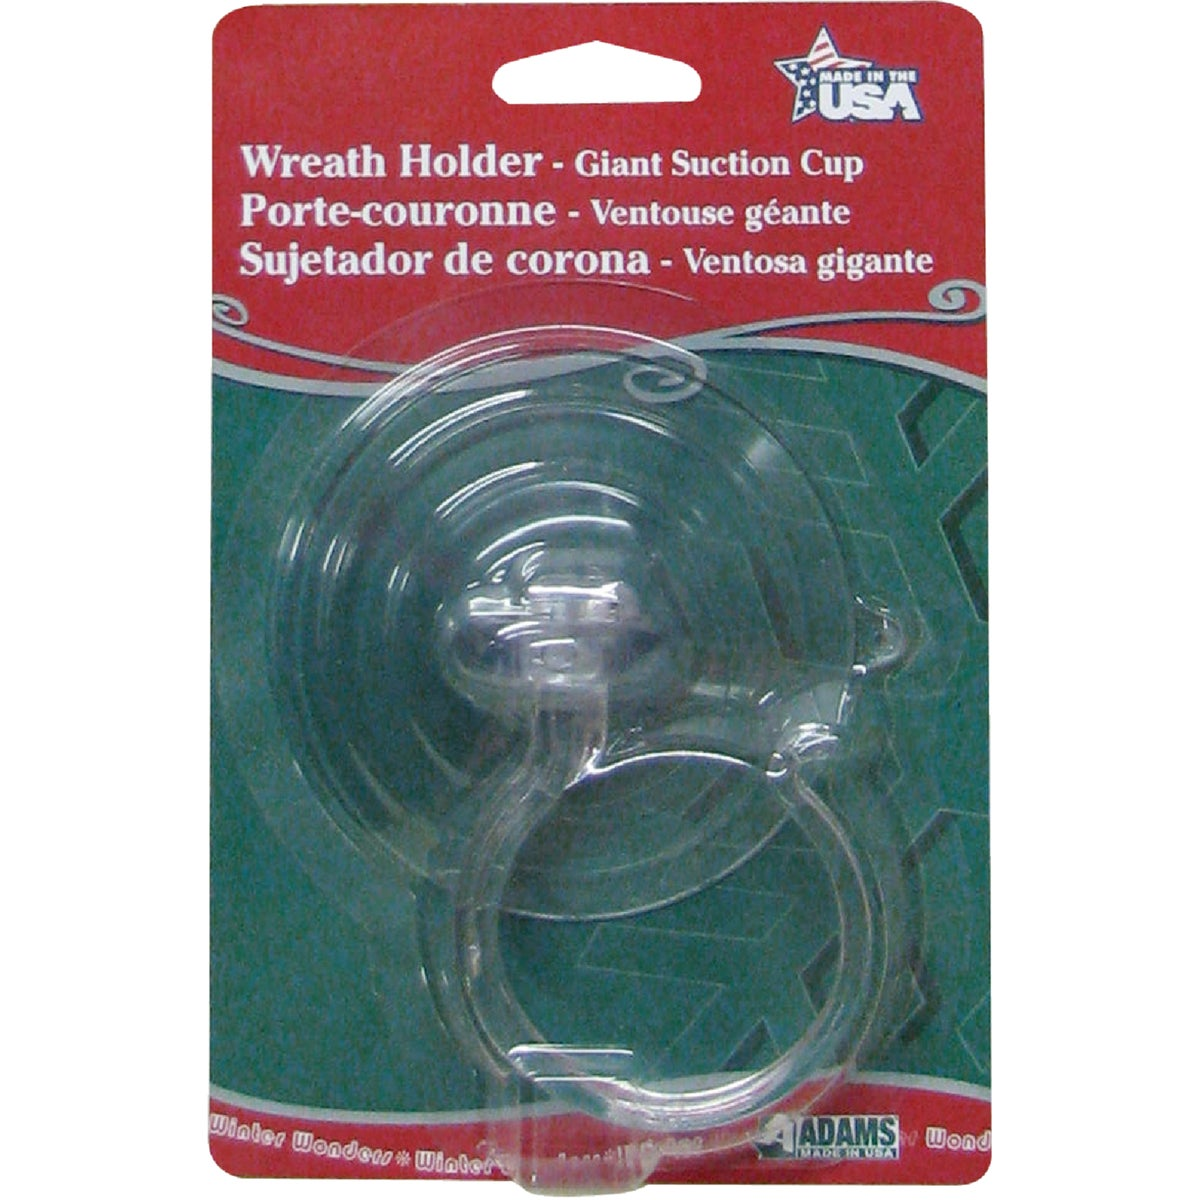 GIANT WREATH SUCTION CUP - 5750881040 by Adams Mfg/christmas